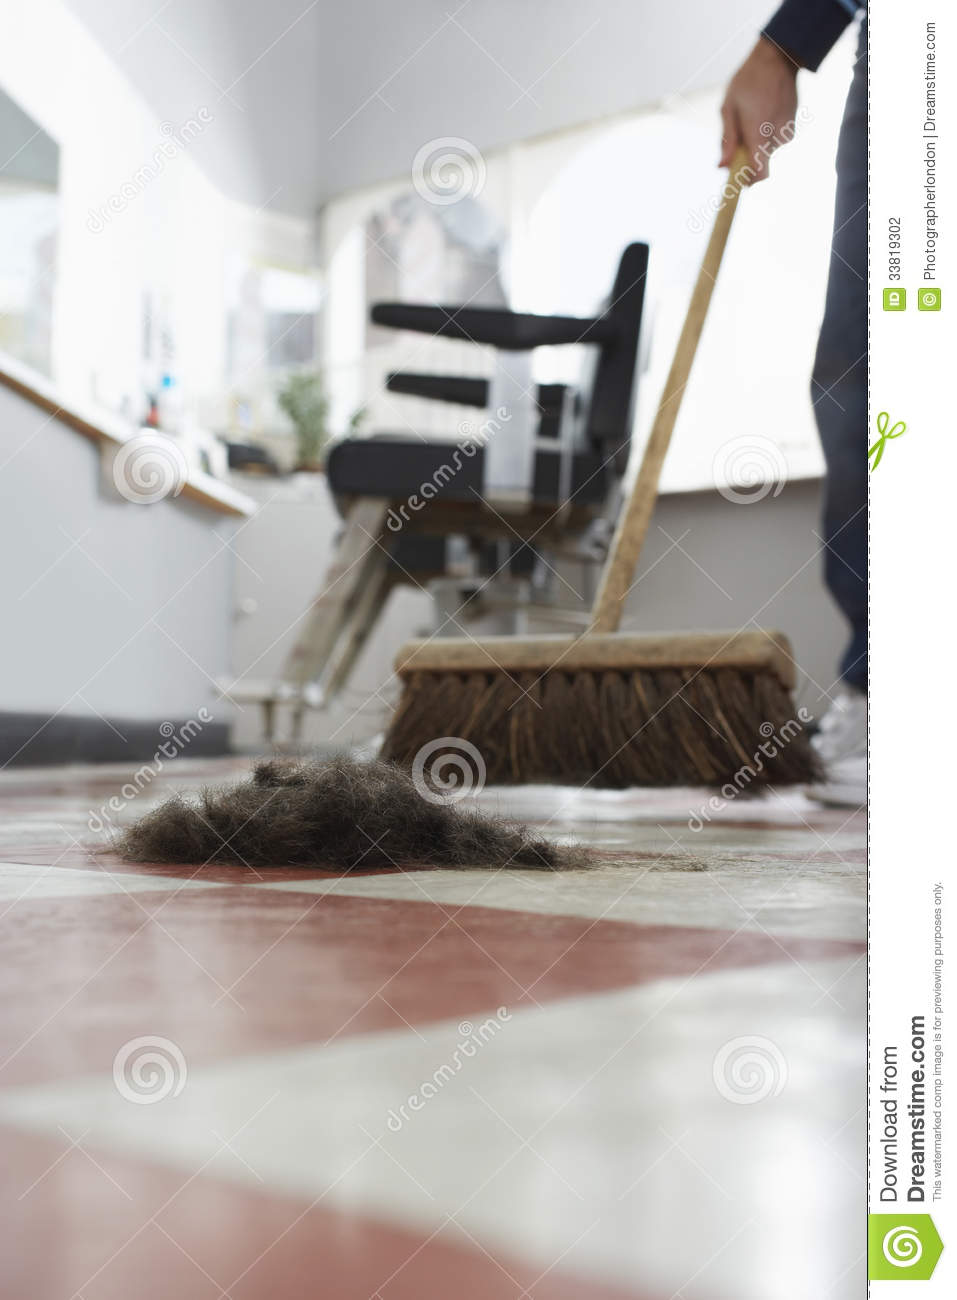 Hairdresser Sweeping Hair Clippings On Floor Stock